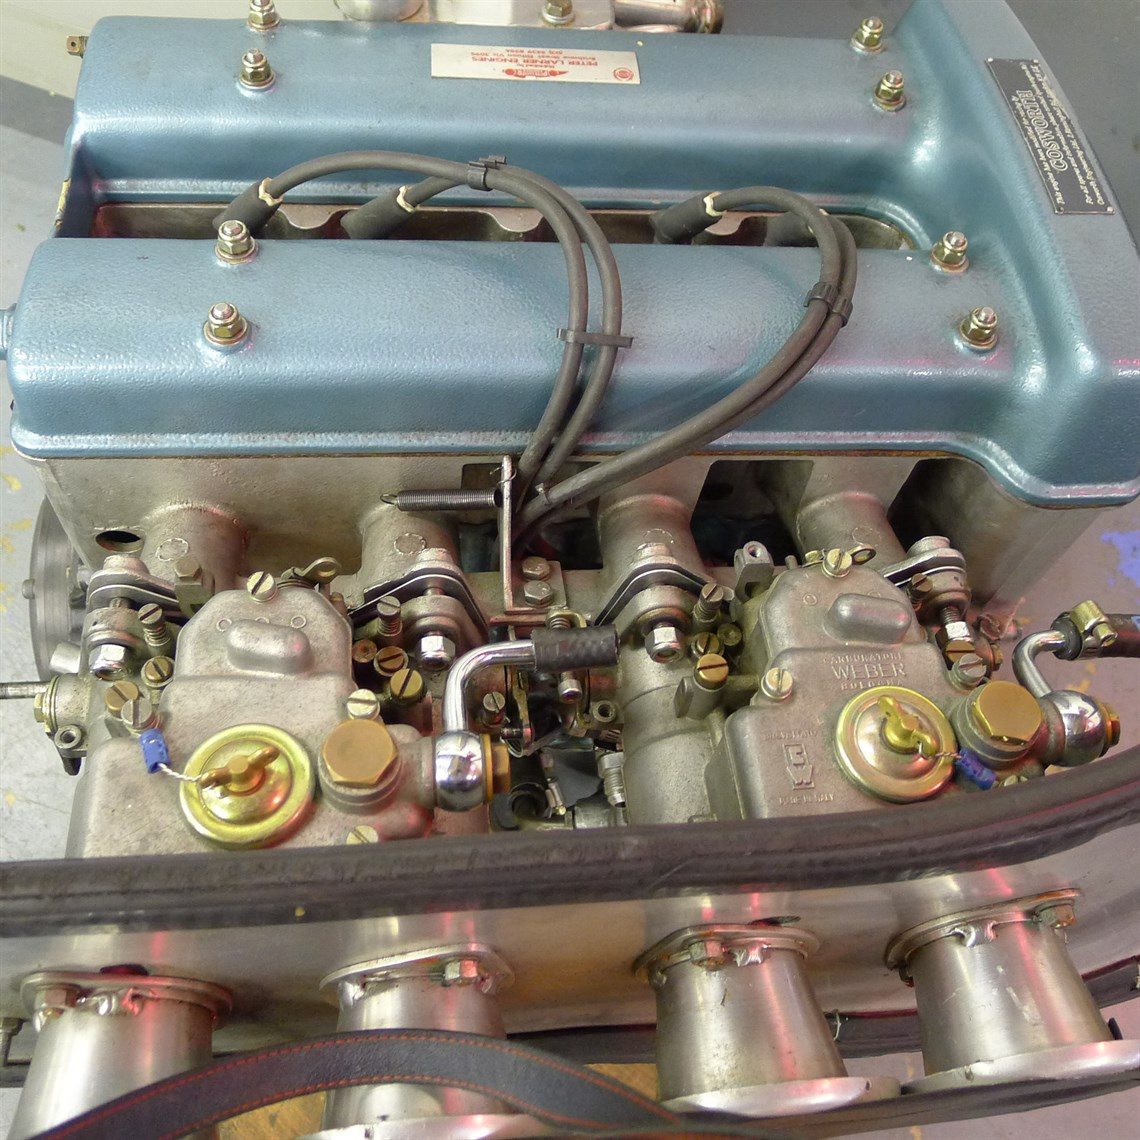 Racecarsdirect com - Lotus Twin cam 1500cc race engine